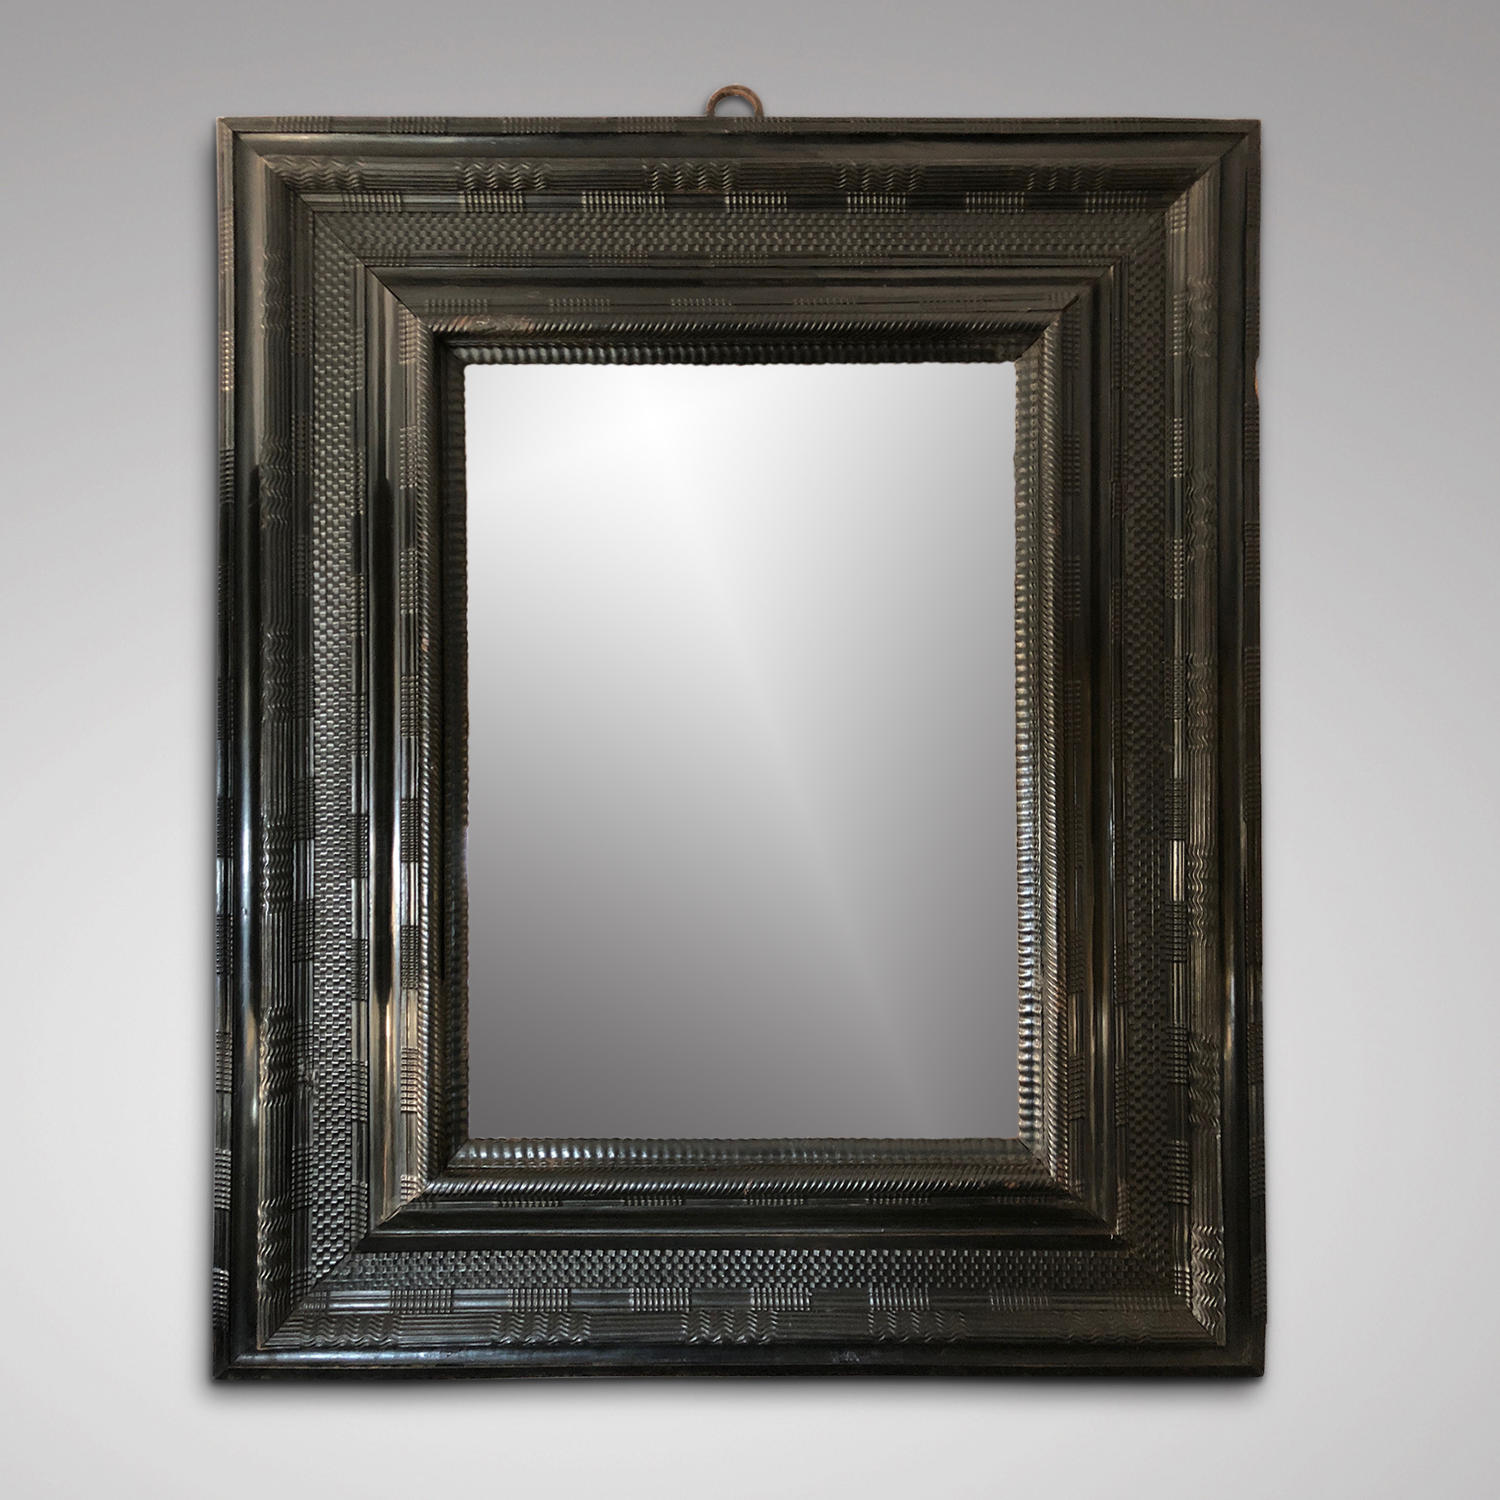 A 17TH CENTURY EBONY CUSHION MIRROR